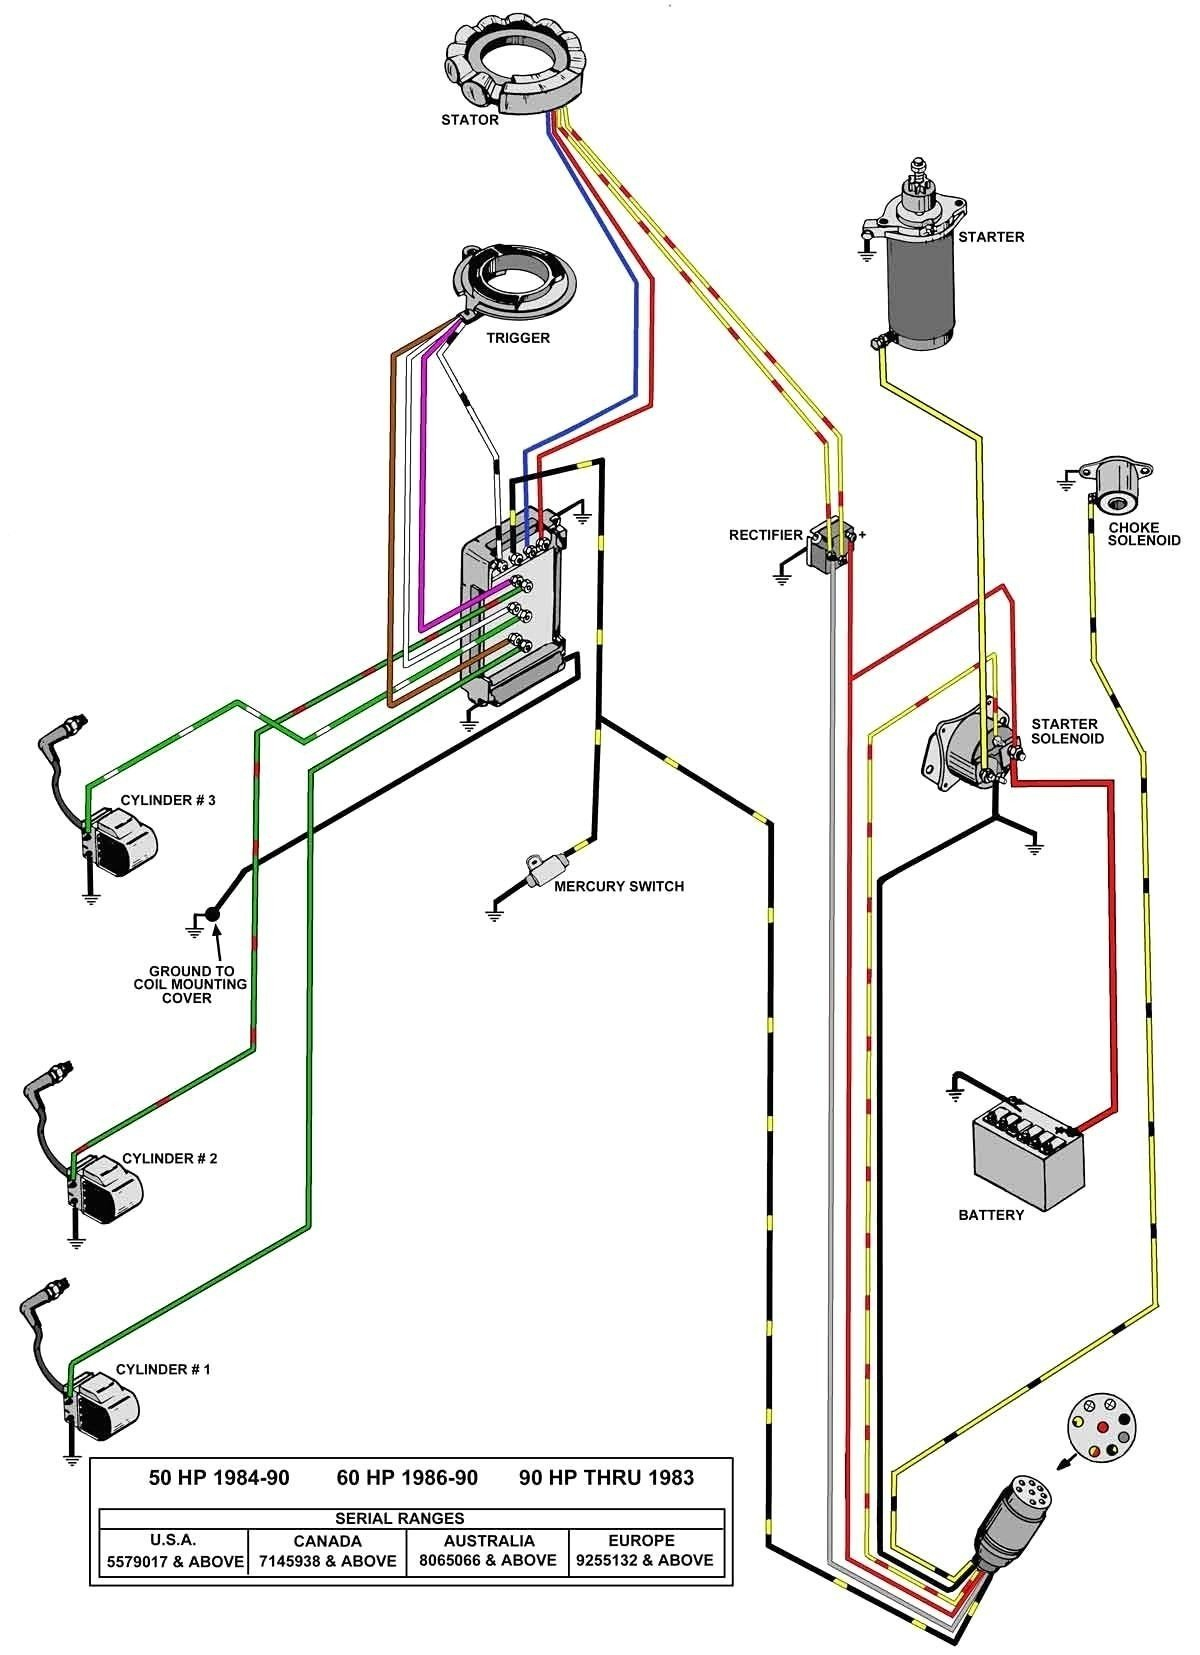 40 Hp Mercury Outboard Wiring Diagram Hecho | Wiring Diagram - Mercury Outboard Rectifier Wiring Diagram